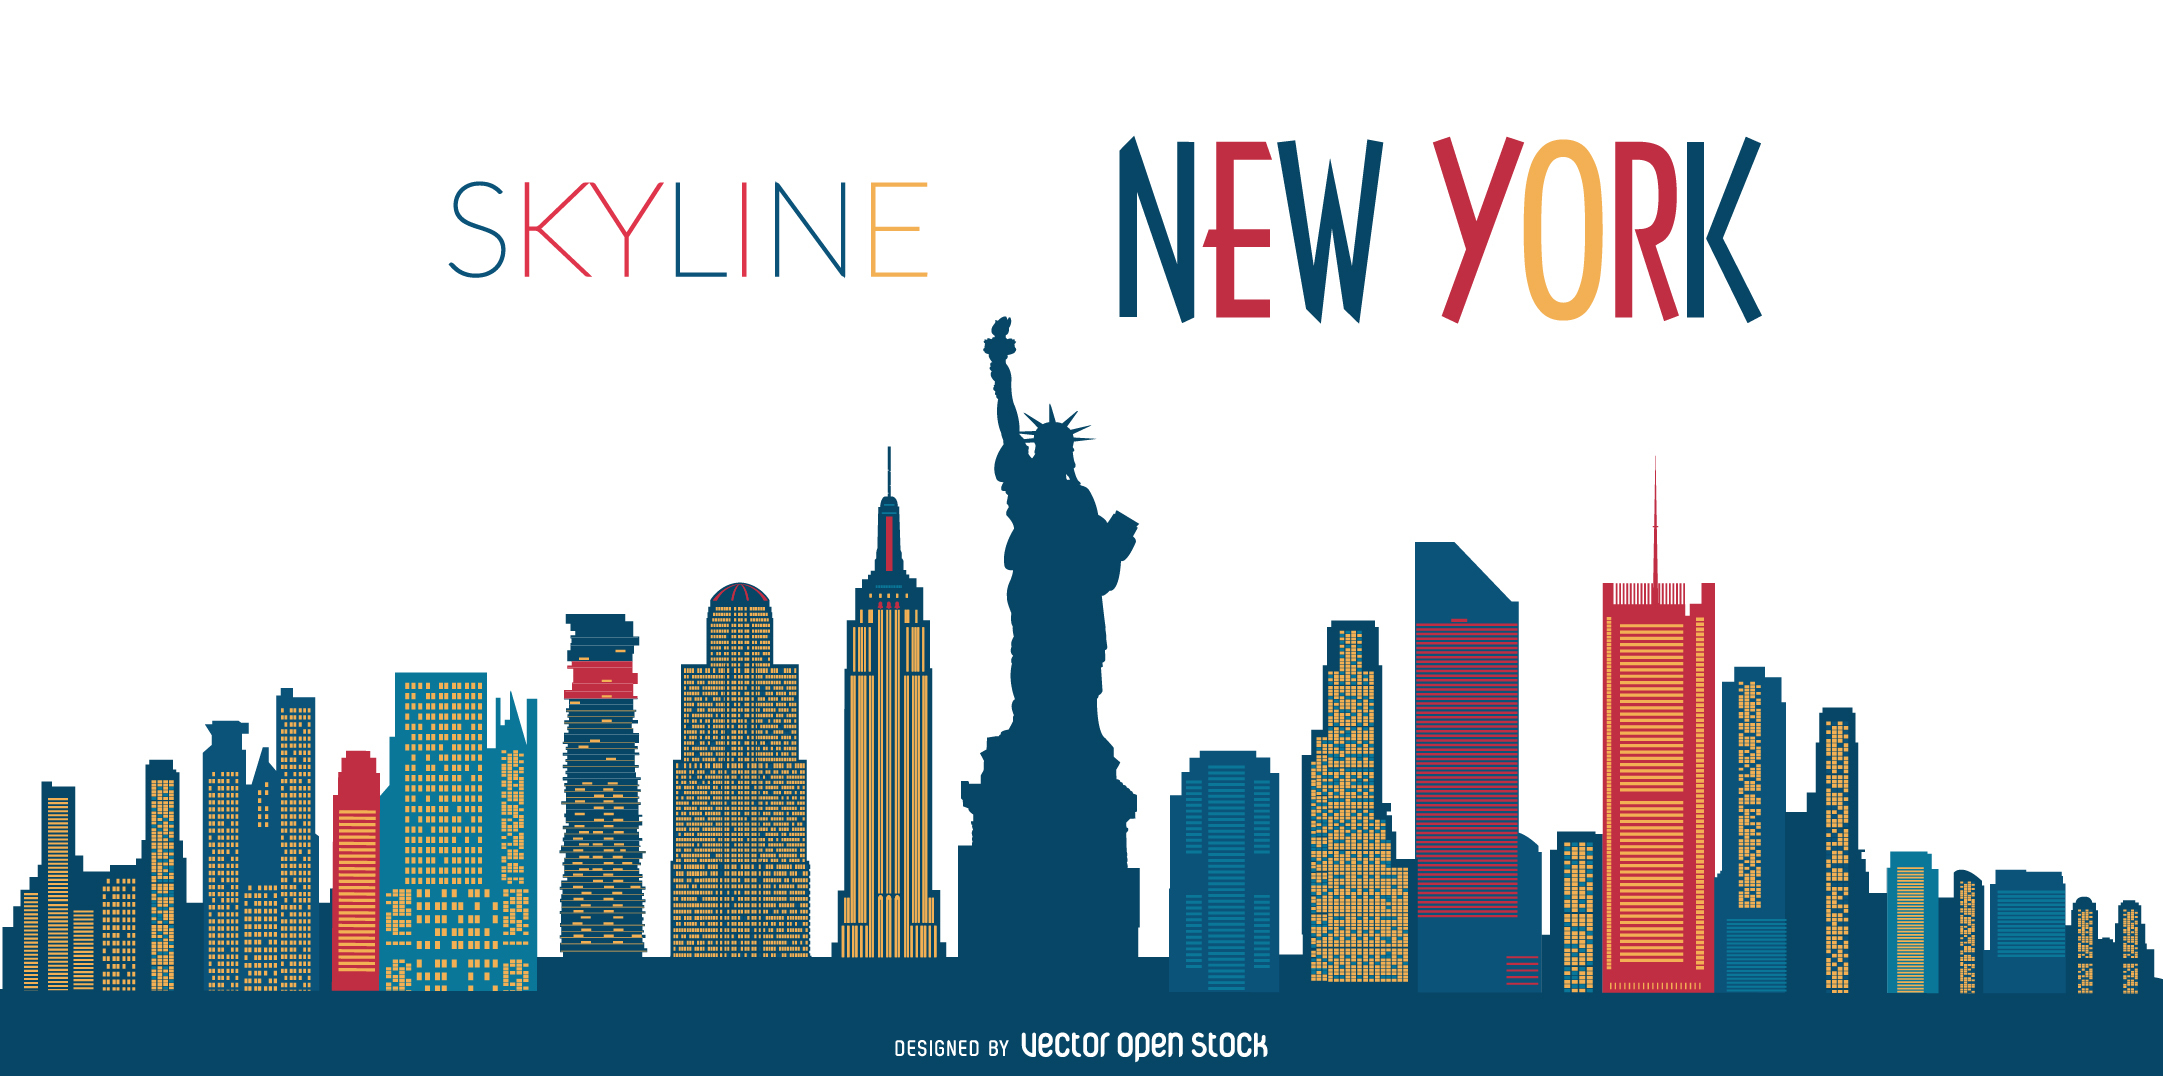 Statue Of Liberty Wall Sticker Silhouette Of New York City Skyline At Getdrawings Com